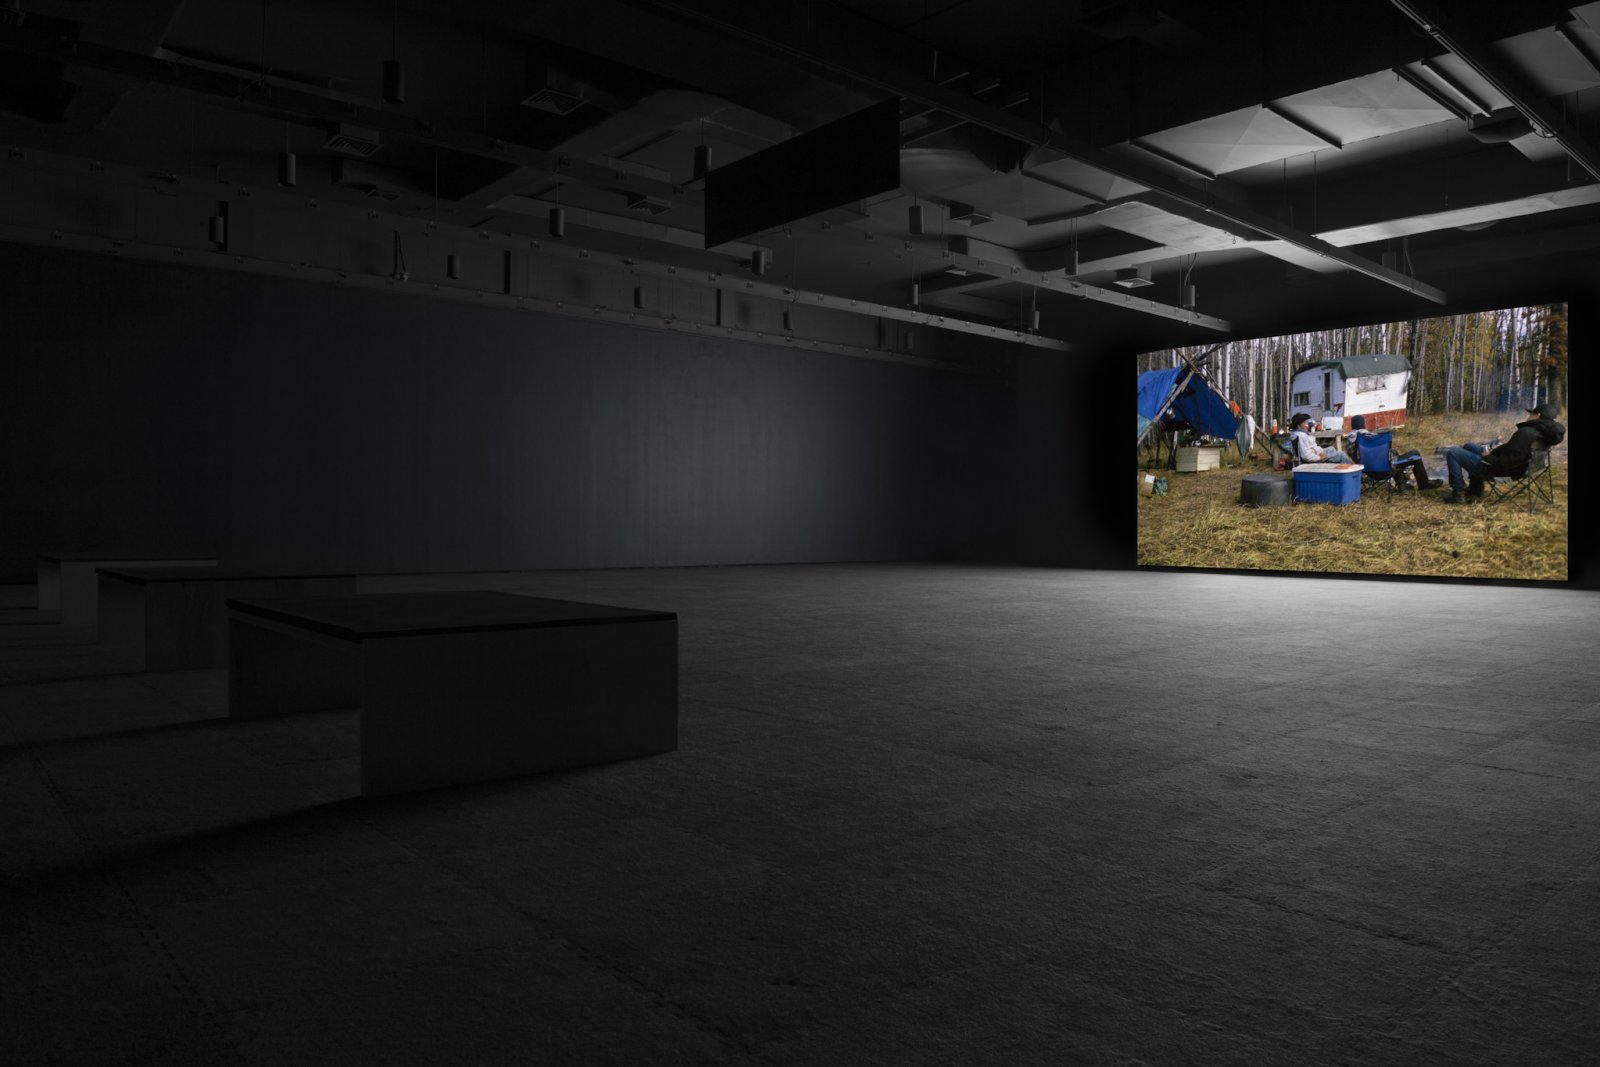 Brian Jungen and Duane Linklater, Modest Livelihood, 2012, super 16mm film, transferred to blu-ray, 50 minutes, silent. Installation view, Walter Phillips Gallery, Banff, 2012.